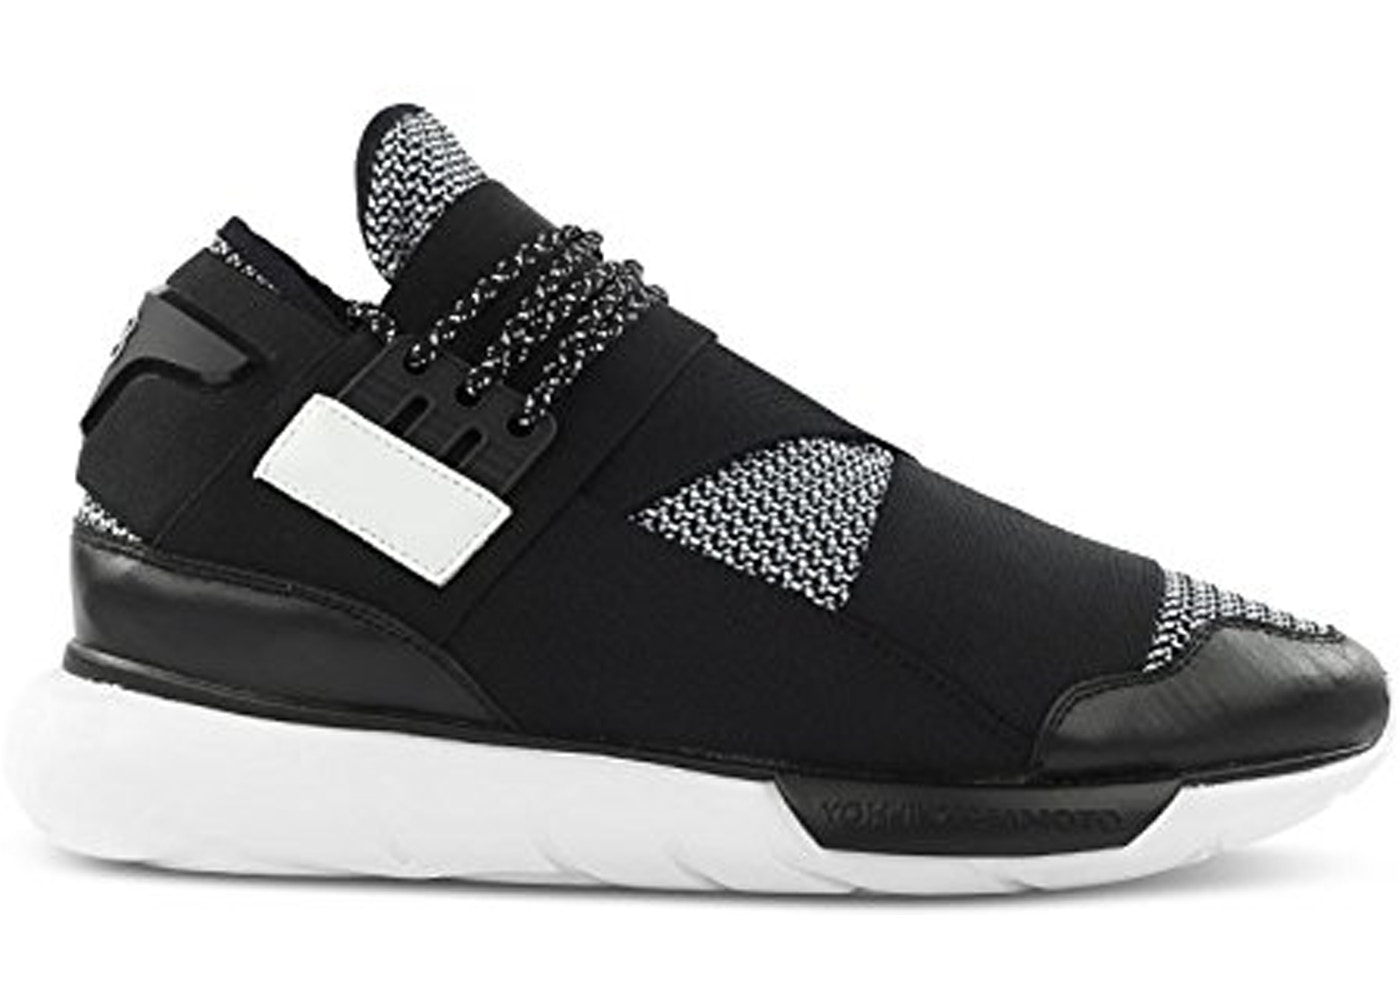 Embrión traducir Frotar  adidas Y-3 Qasa High Black White (2014) - B35674